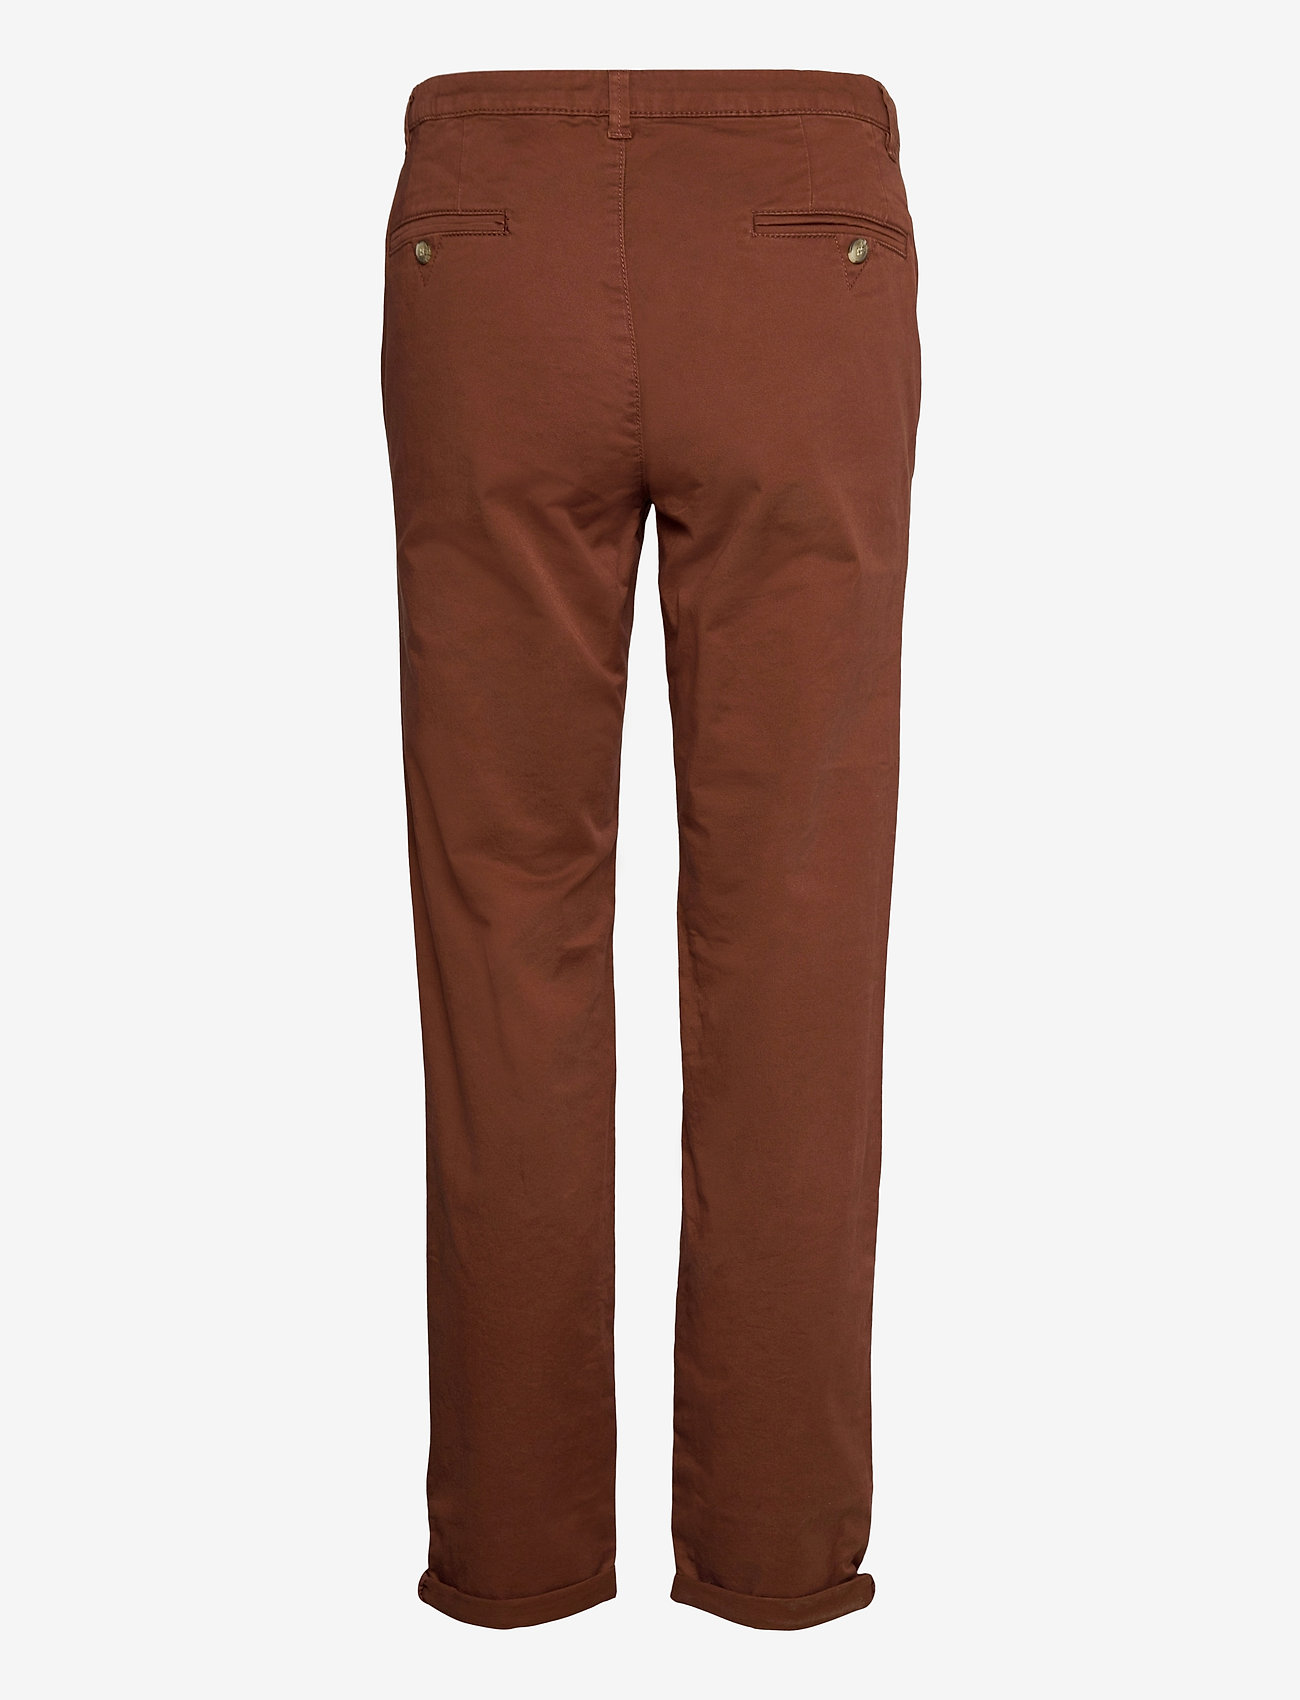 Esprit Casual - Pants woven - chinos - brown - 1